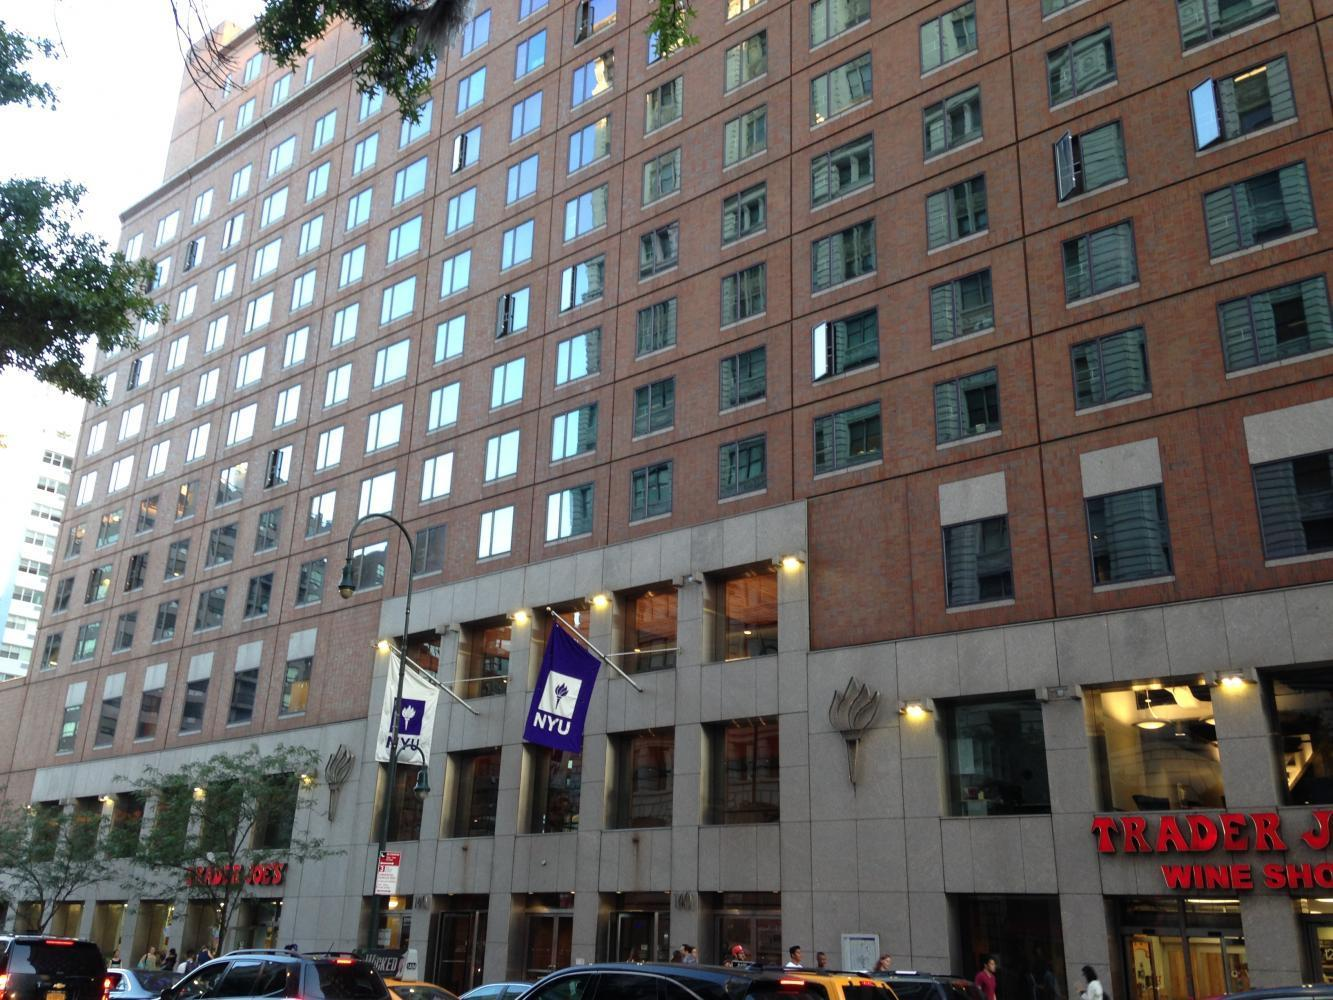 NYU's Palladium building, where the Wasserman Center for Career Development is located. Here, students are able to find and inquire about internships.